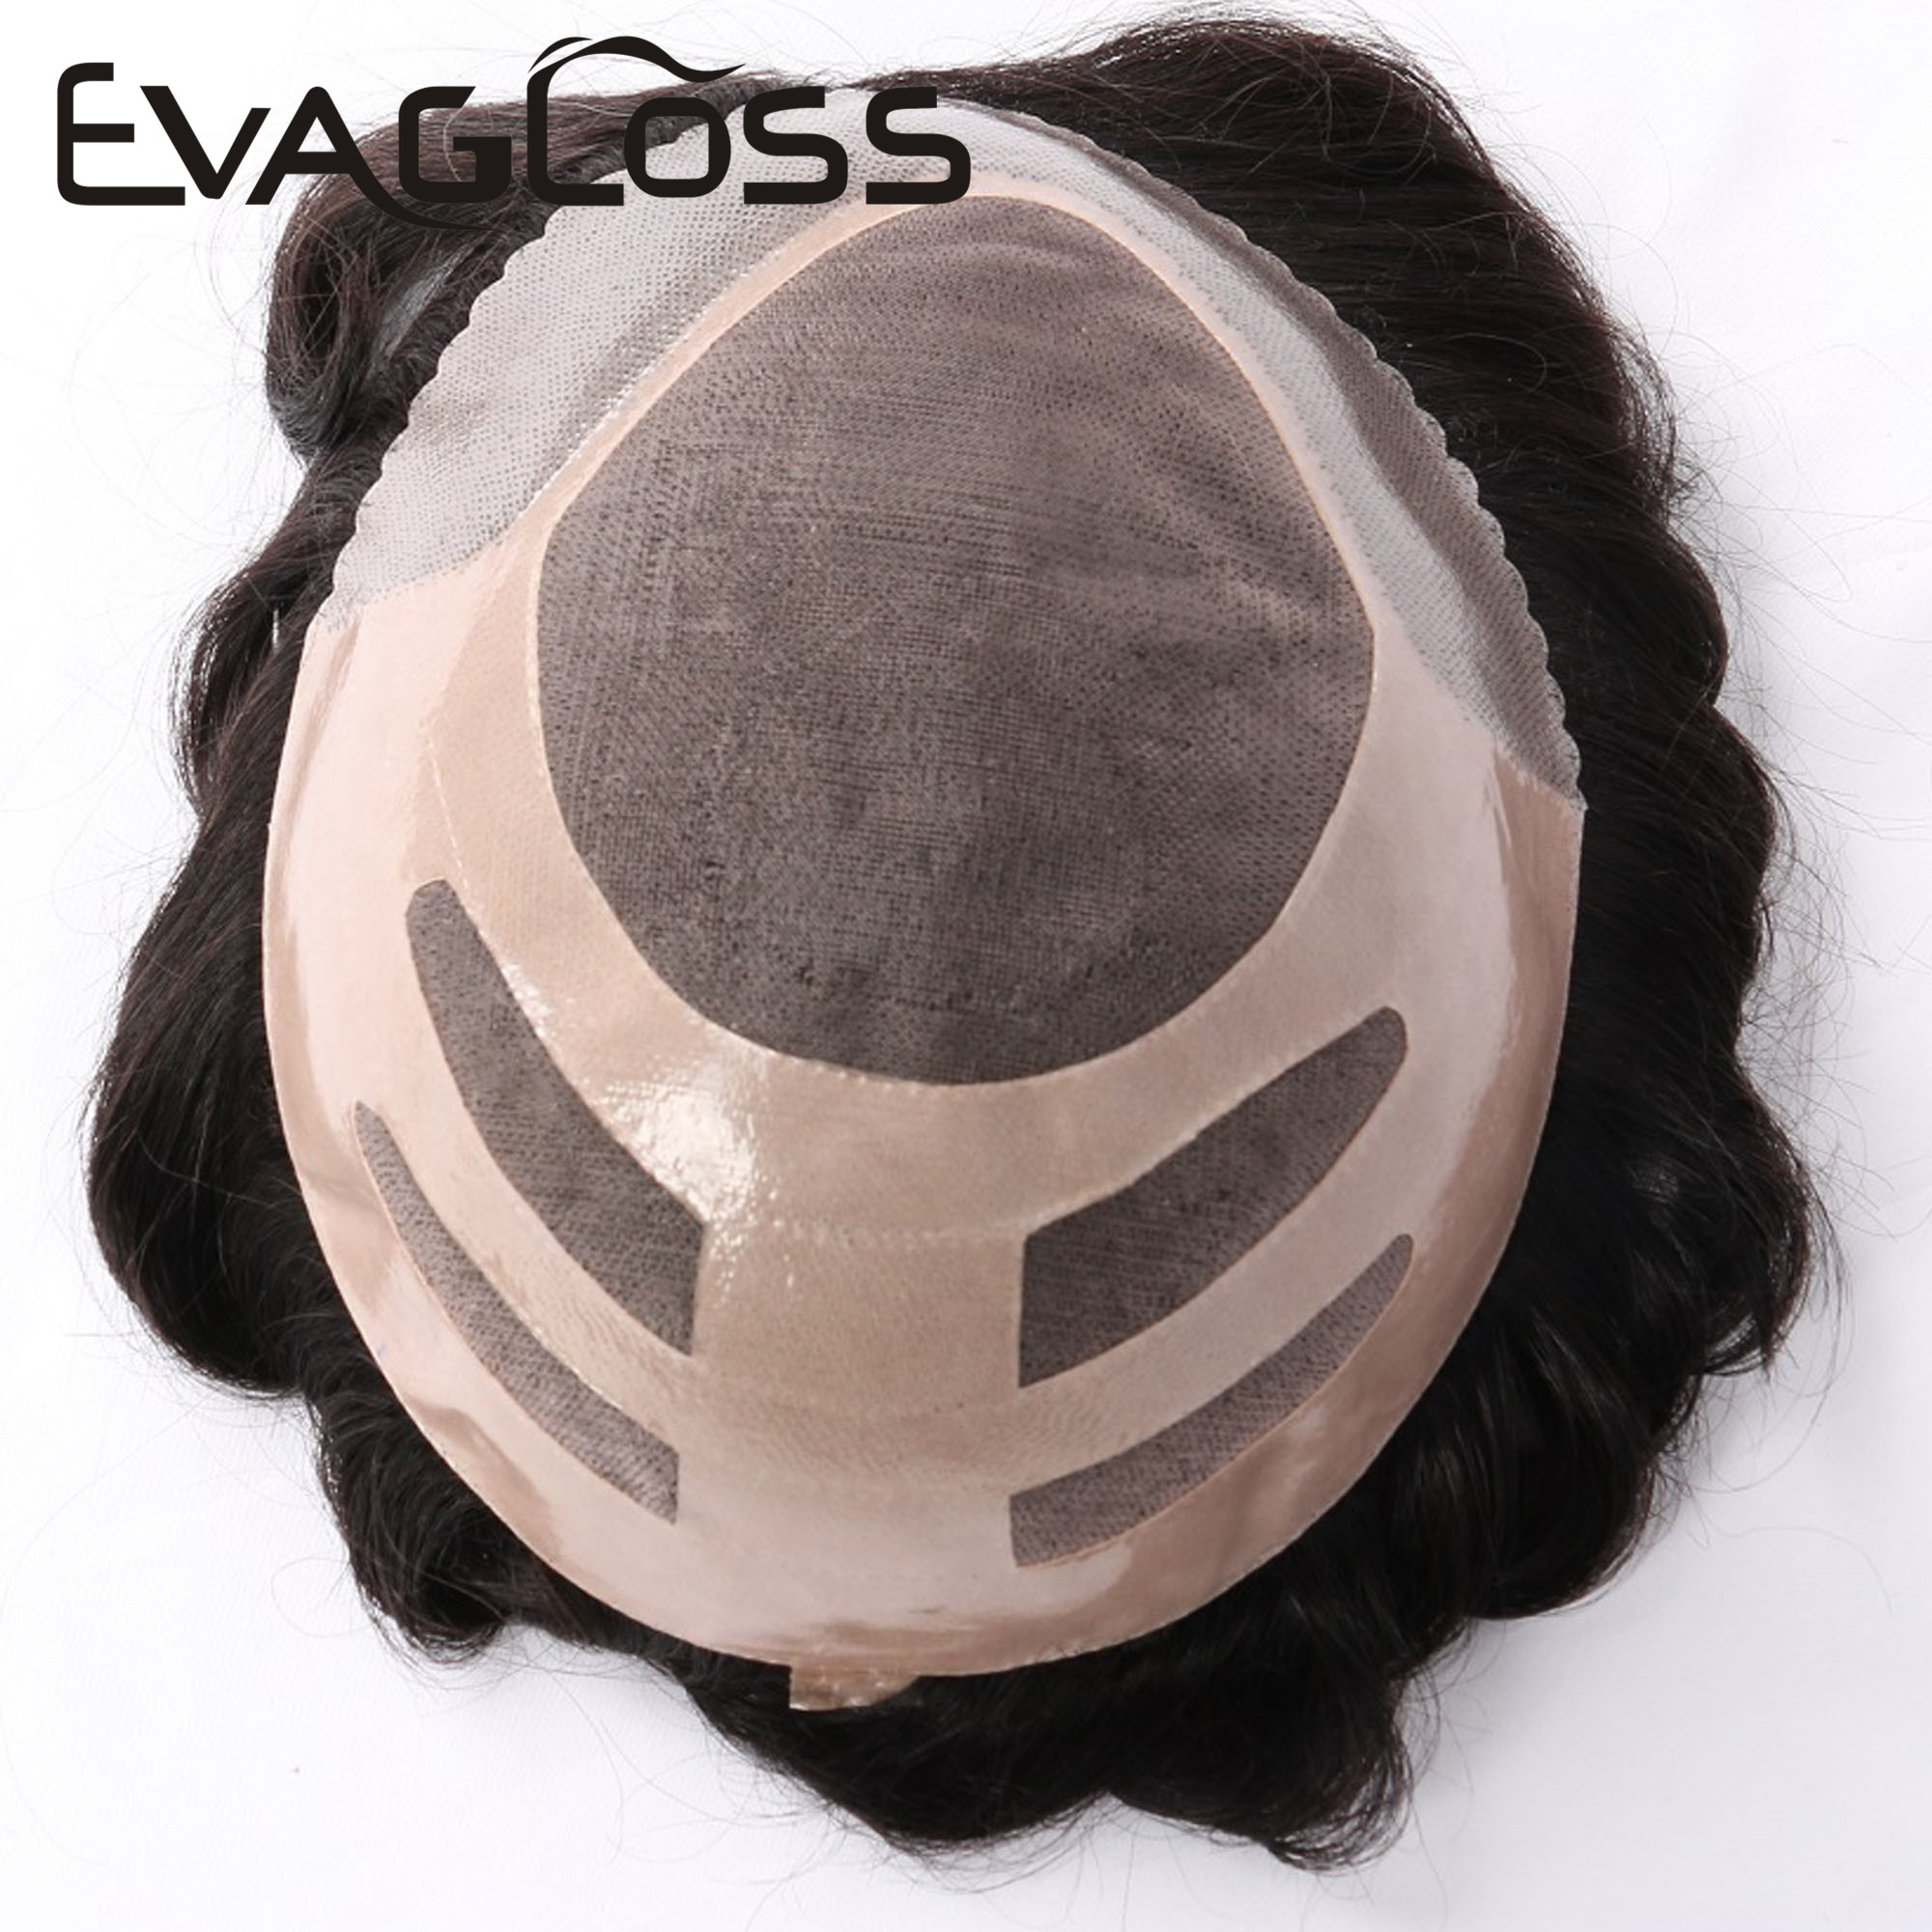 EVAGLOSS Men's Wig Fine Mono Lace With Poly Bond Handmade Human Hair Male Wig Hair System Replacement Hairpiece Mens Toupee